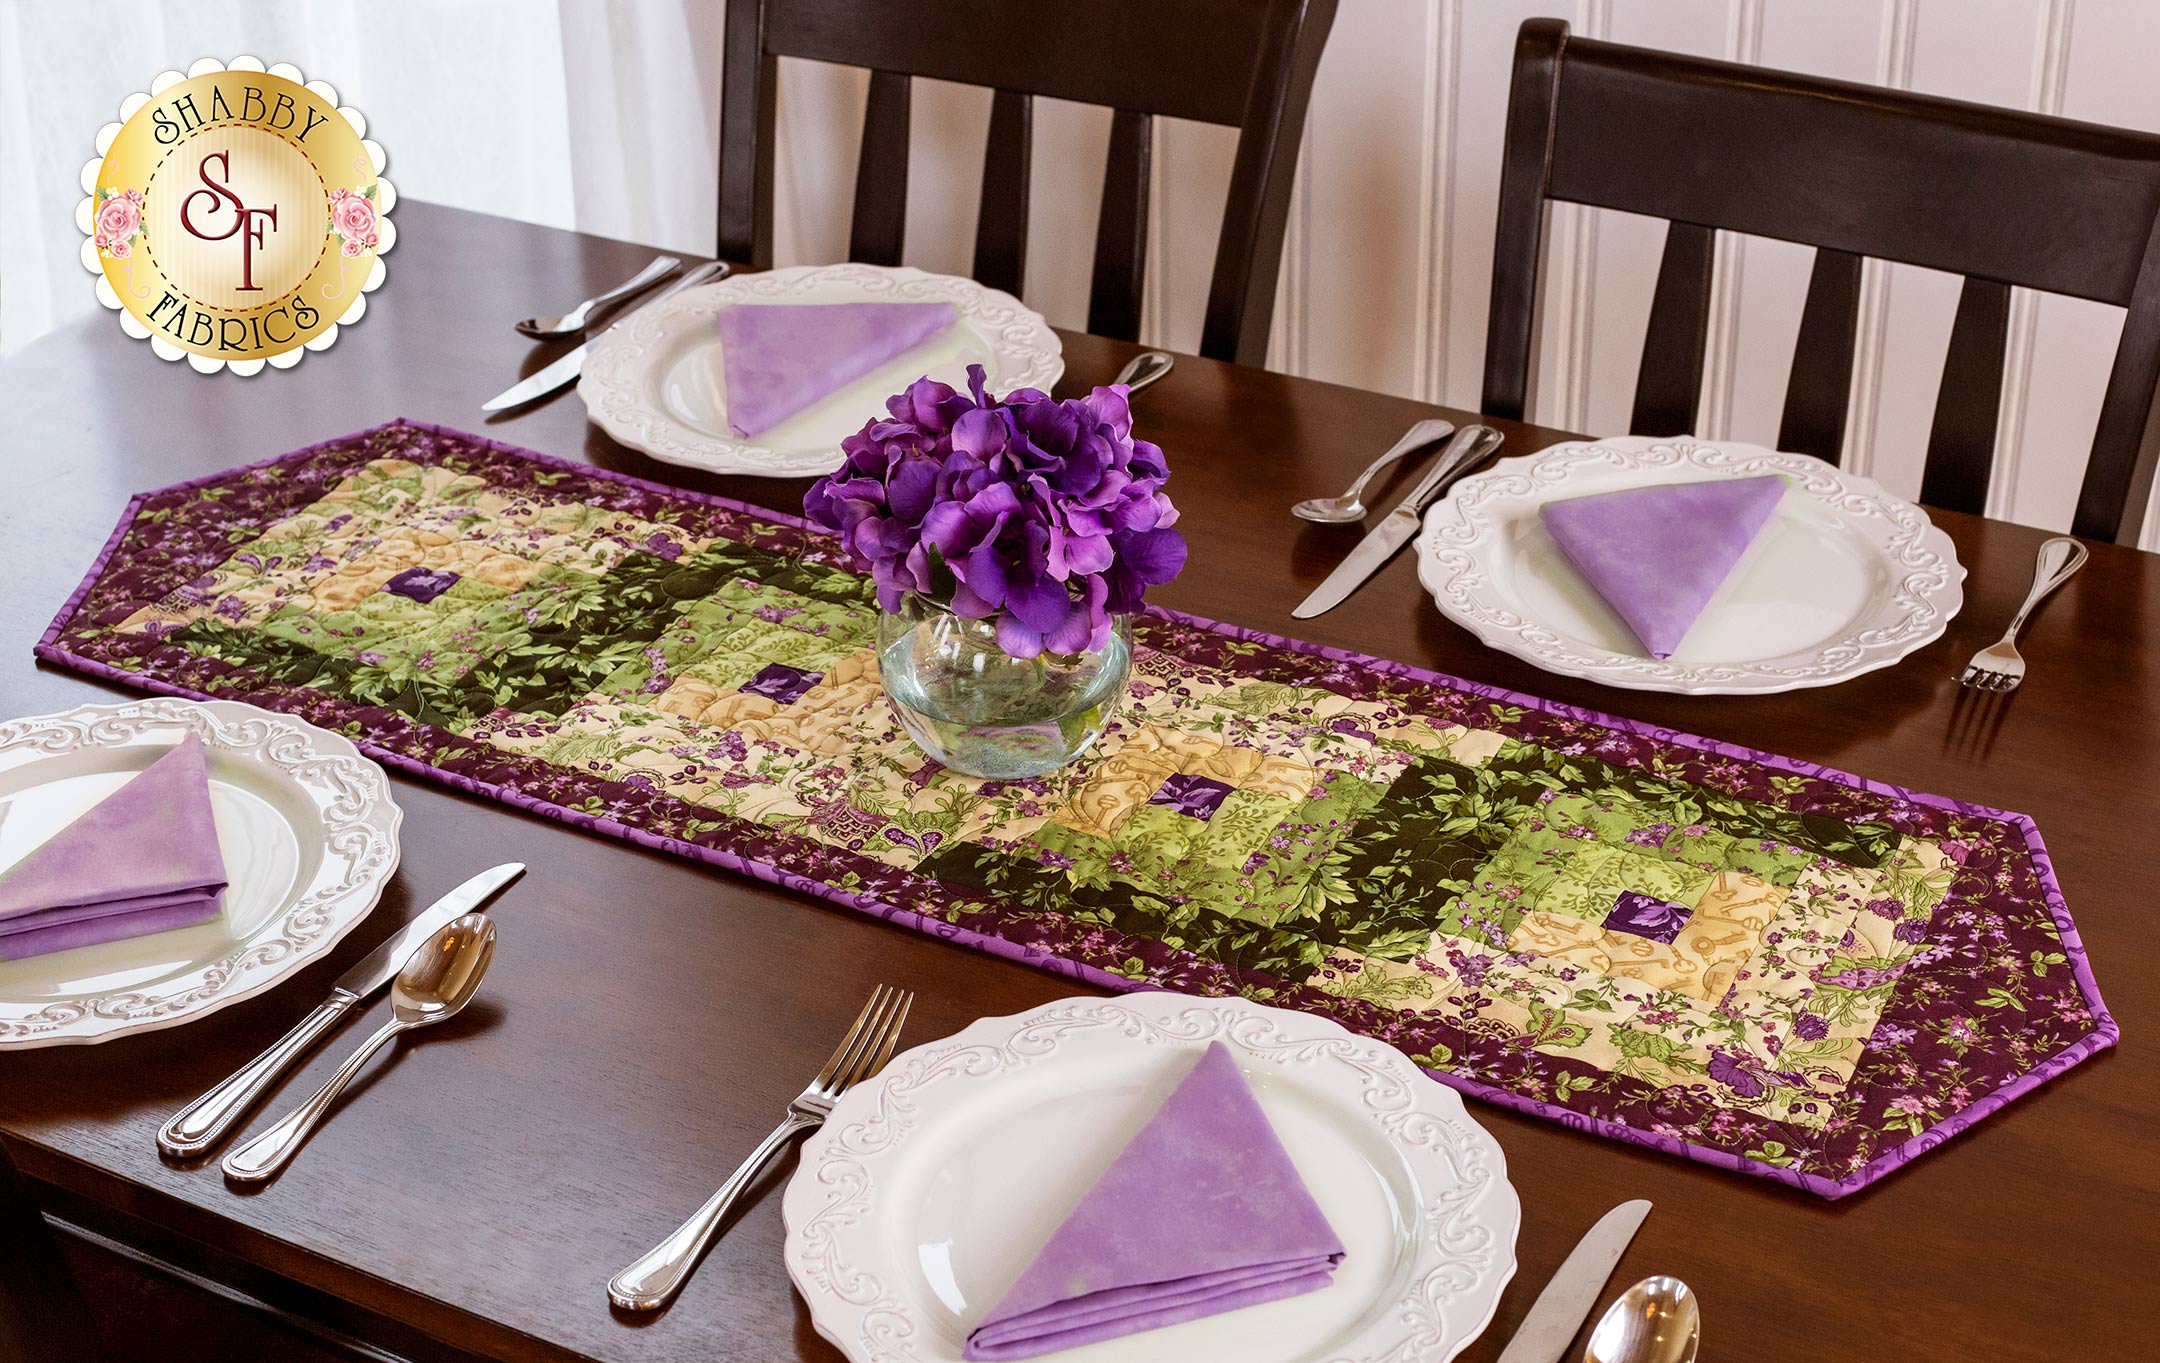 log cabin table runner pre cut kit aubergine shabby fabrics logcabin auberginerunner product kenzie accent baby scale target barn door kindle fire round patio chair foyer ideas